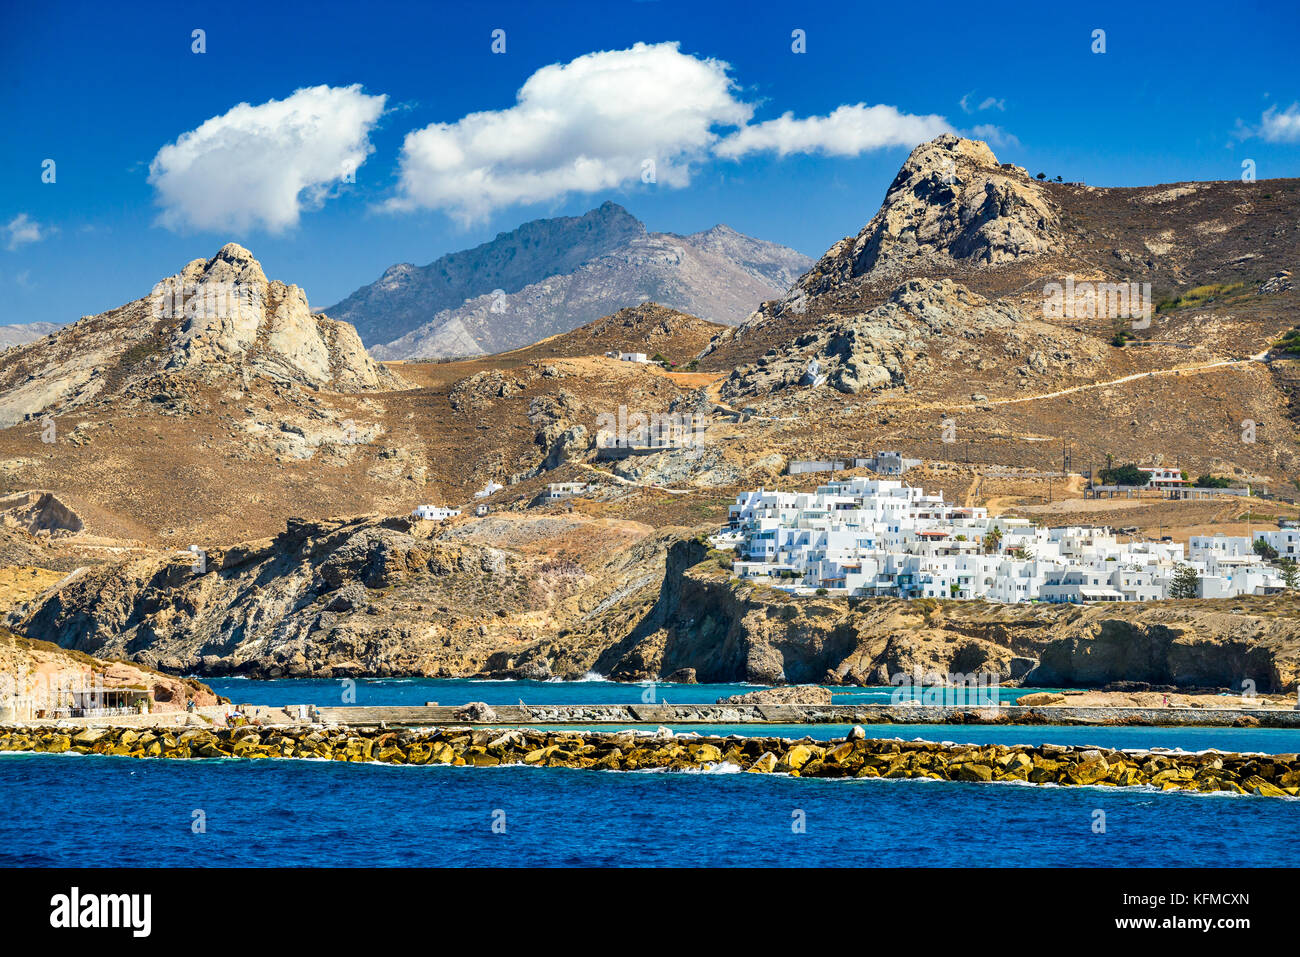 Naxos, Greek Islands. Sunny summer landscape with rocky island, Cyclades in Greece. - Stock Image